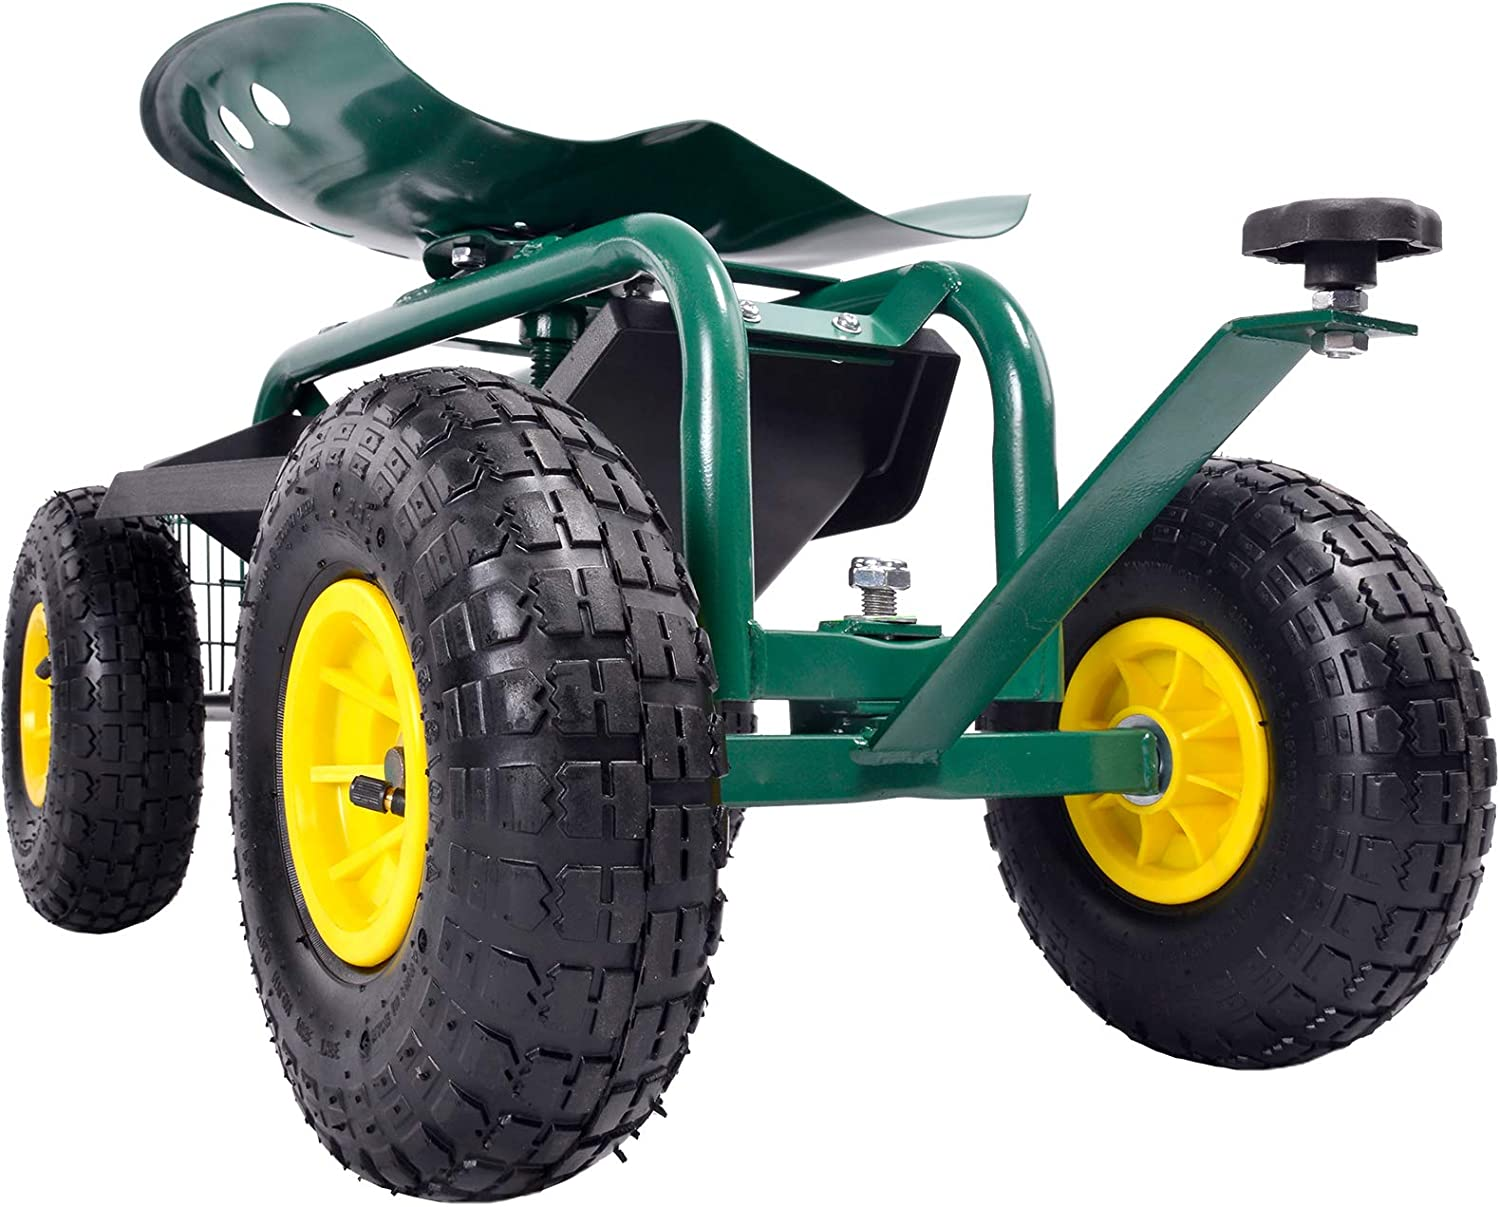 Garden Carts with Seat and Wheels, Garden Carts and Wagons - ANDGOAL 360 Degree Adjustable Garden Cart Rolling with Extendable Steer Handle Heavy Duty Scooter Wagons